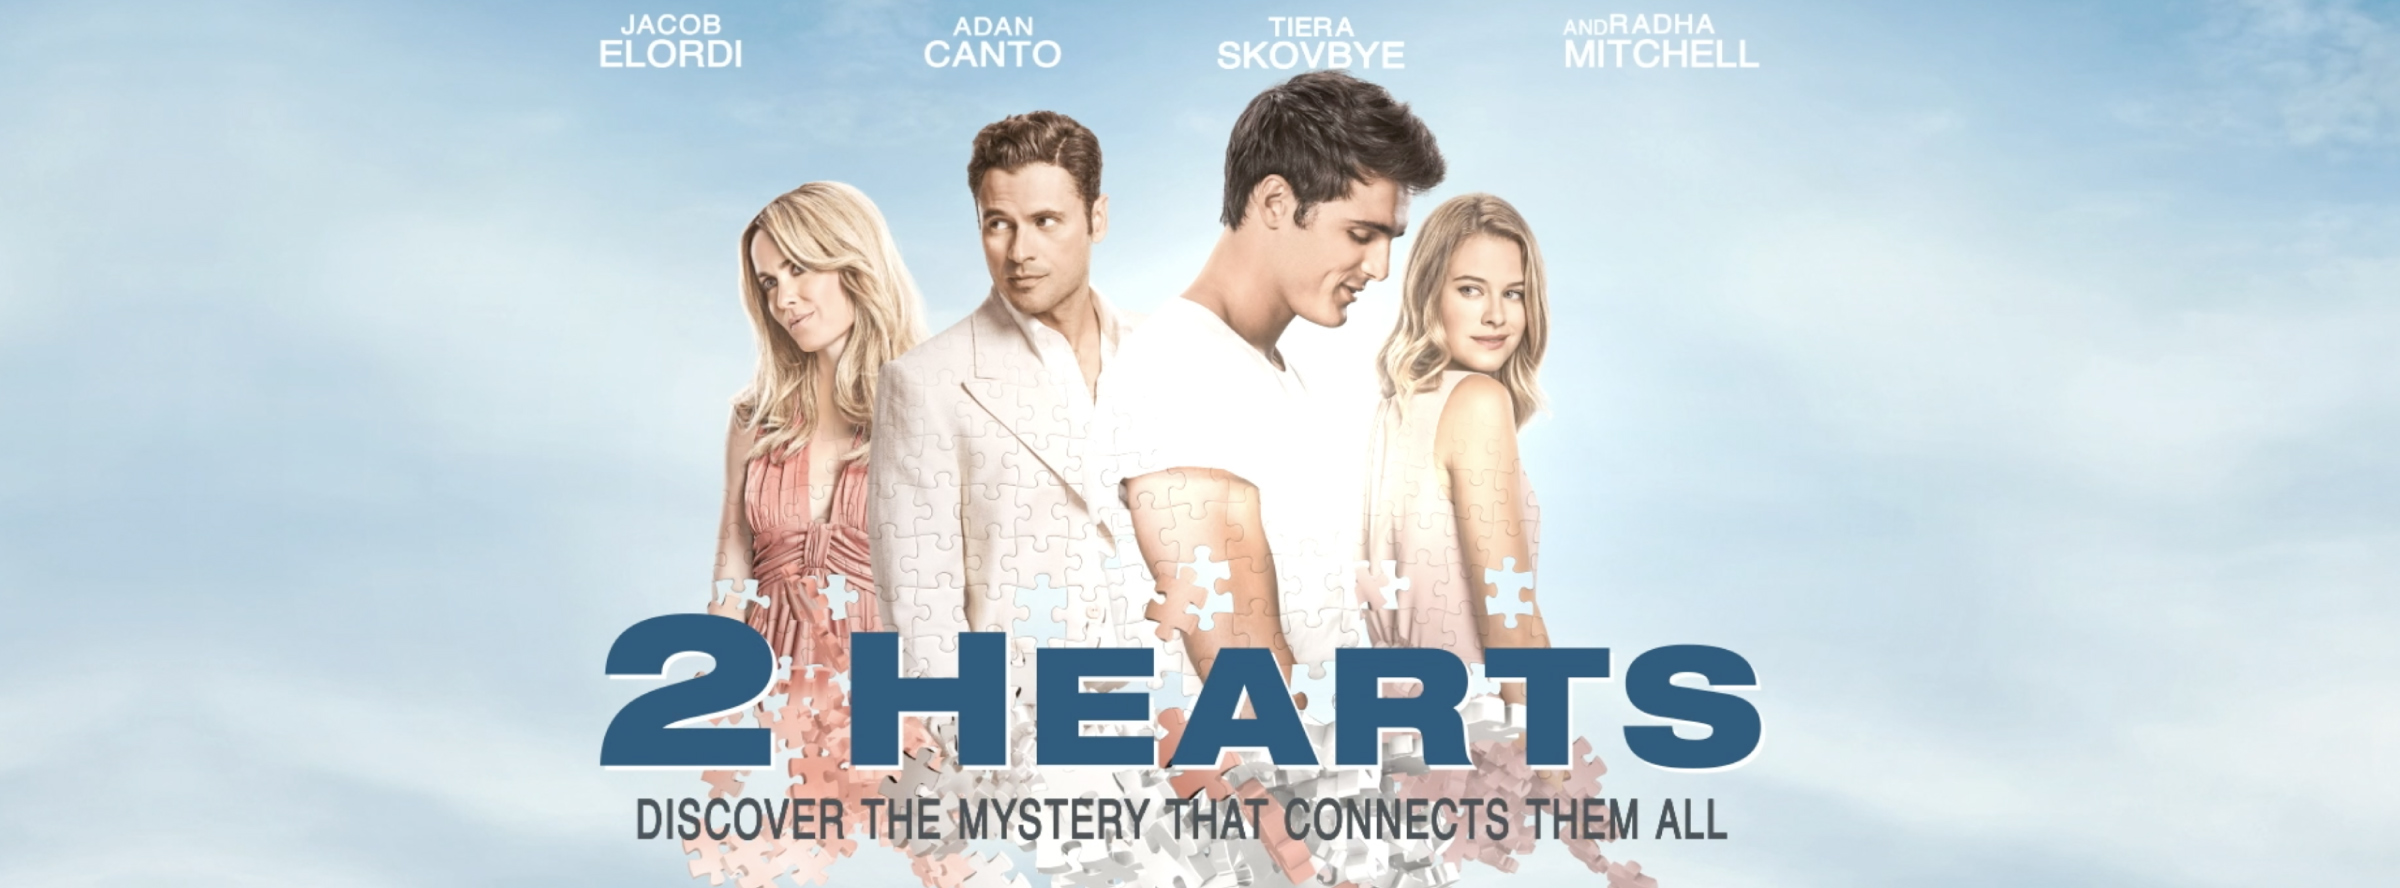 Slider Image for 2 Hearts